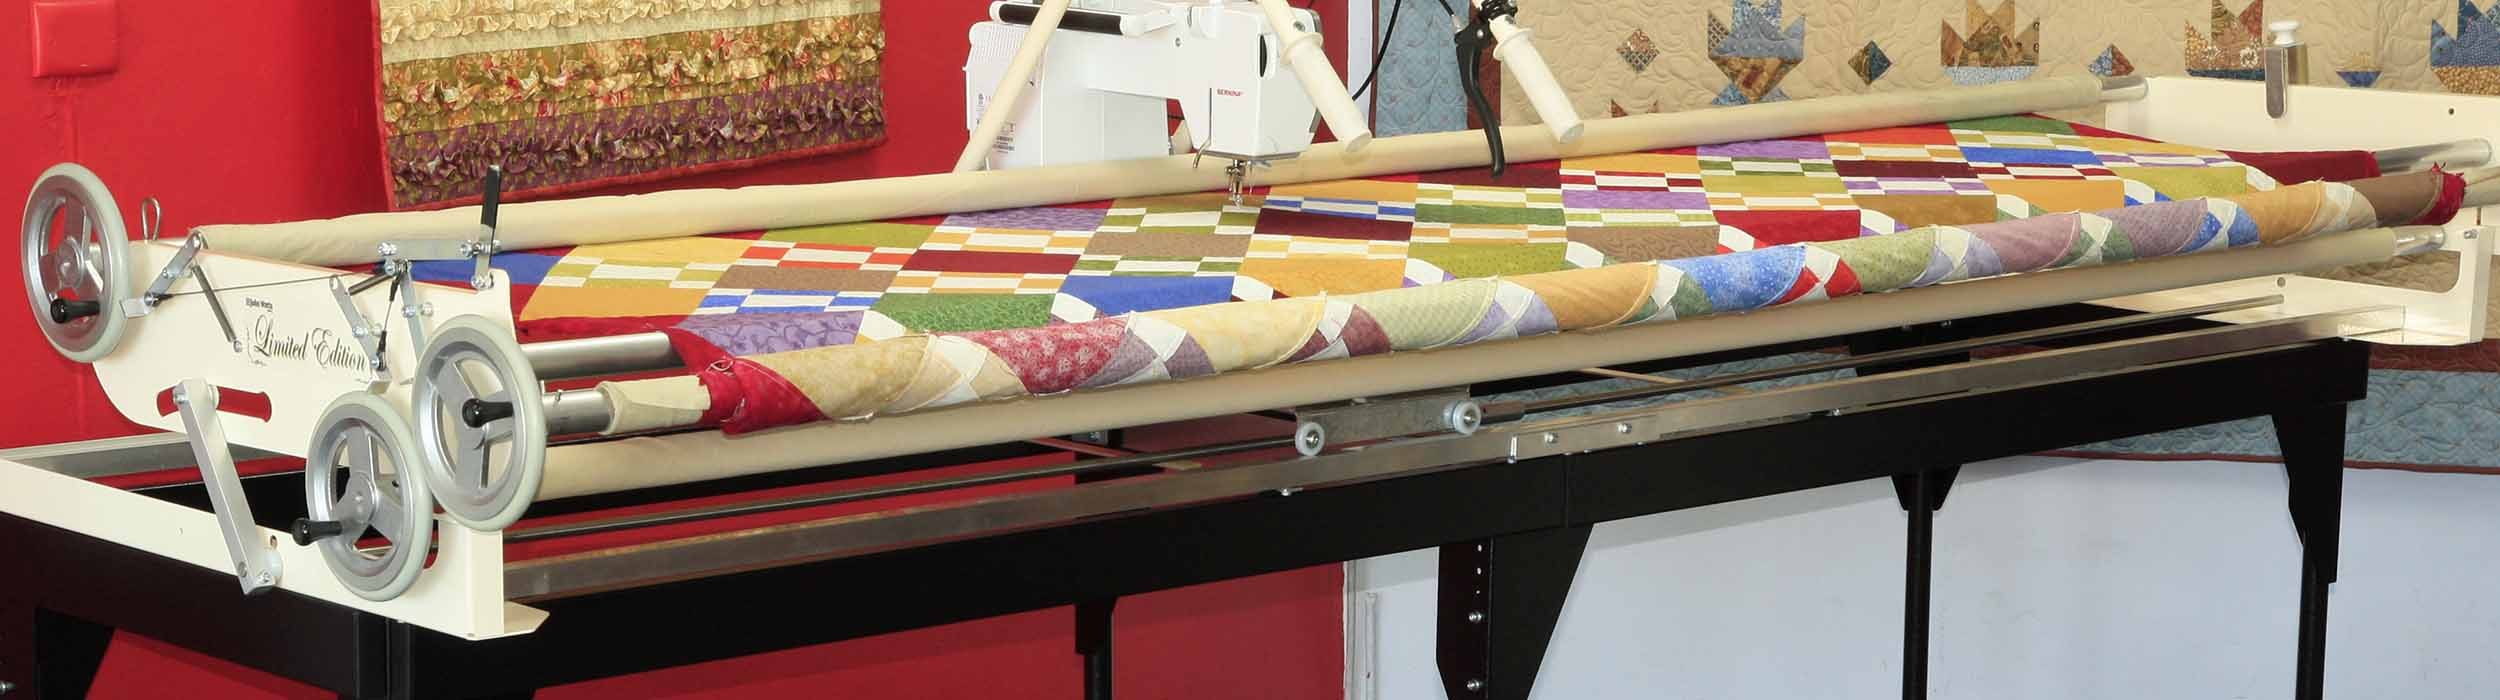 Quilting Frames Quilt Frame Legs Hand Quilting Frames